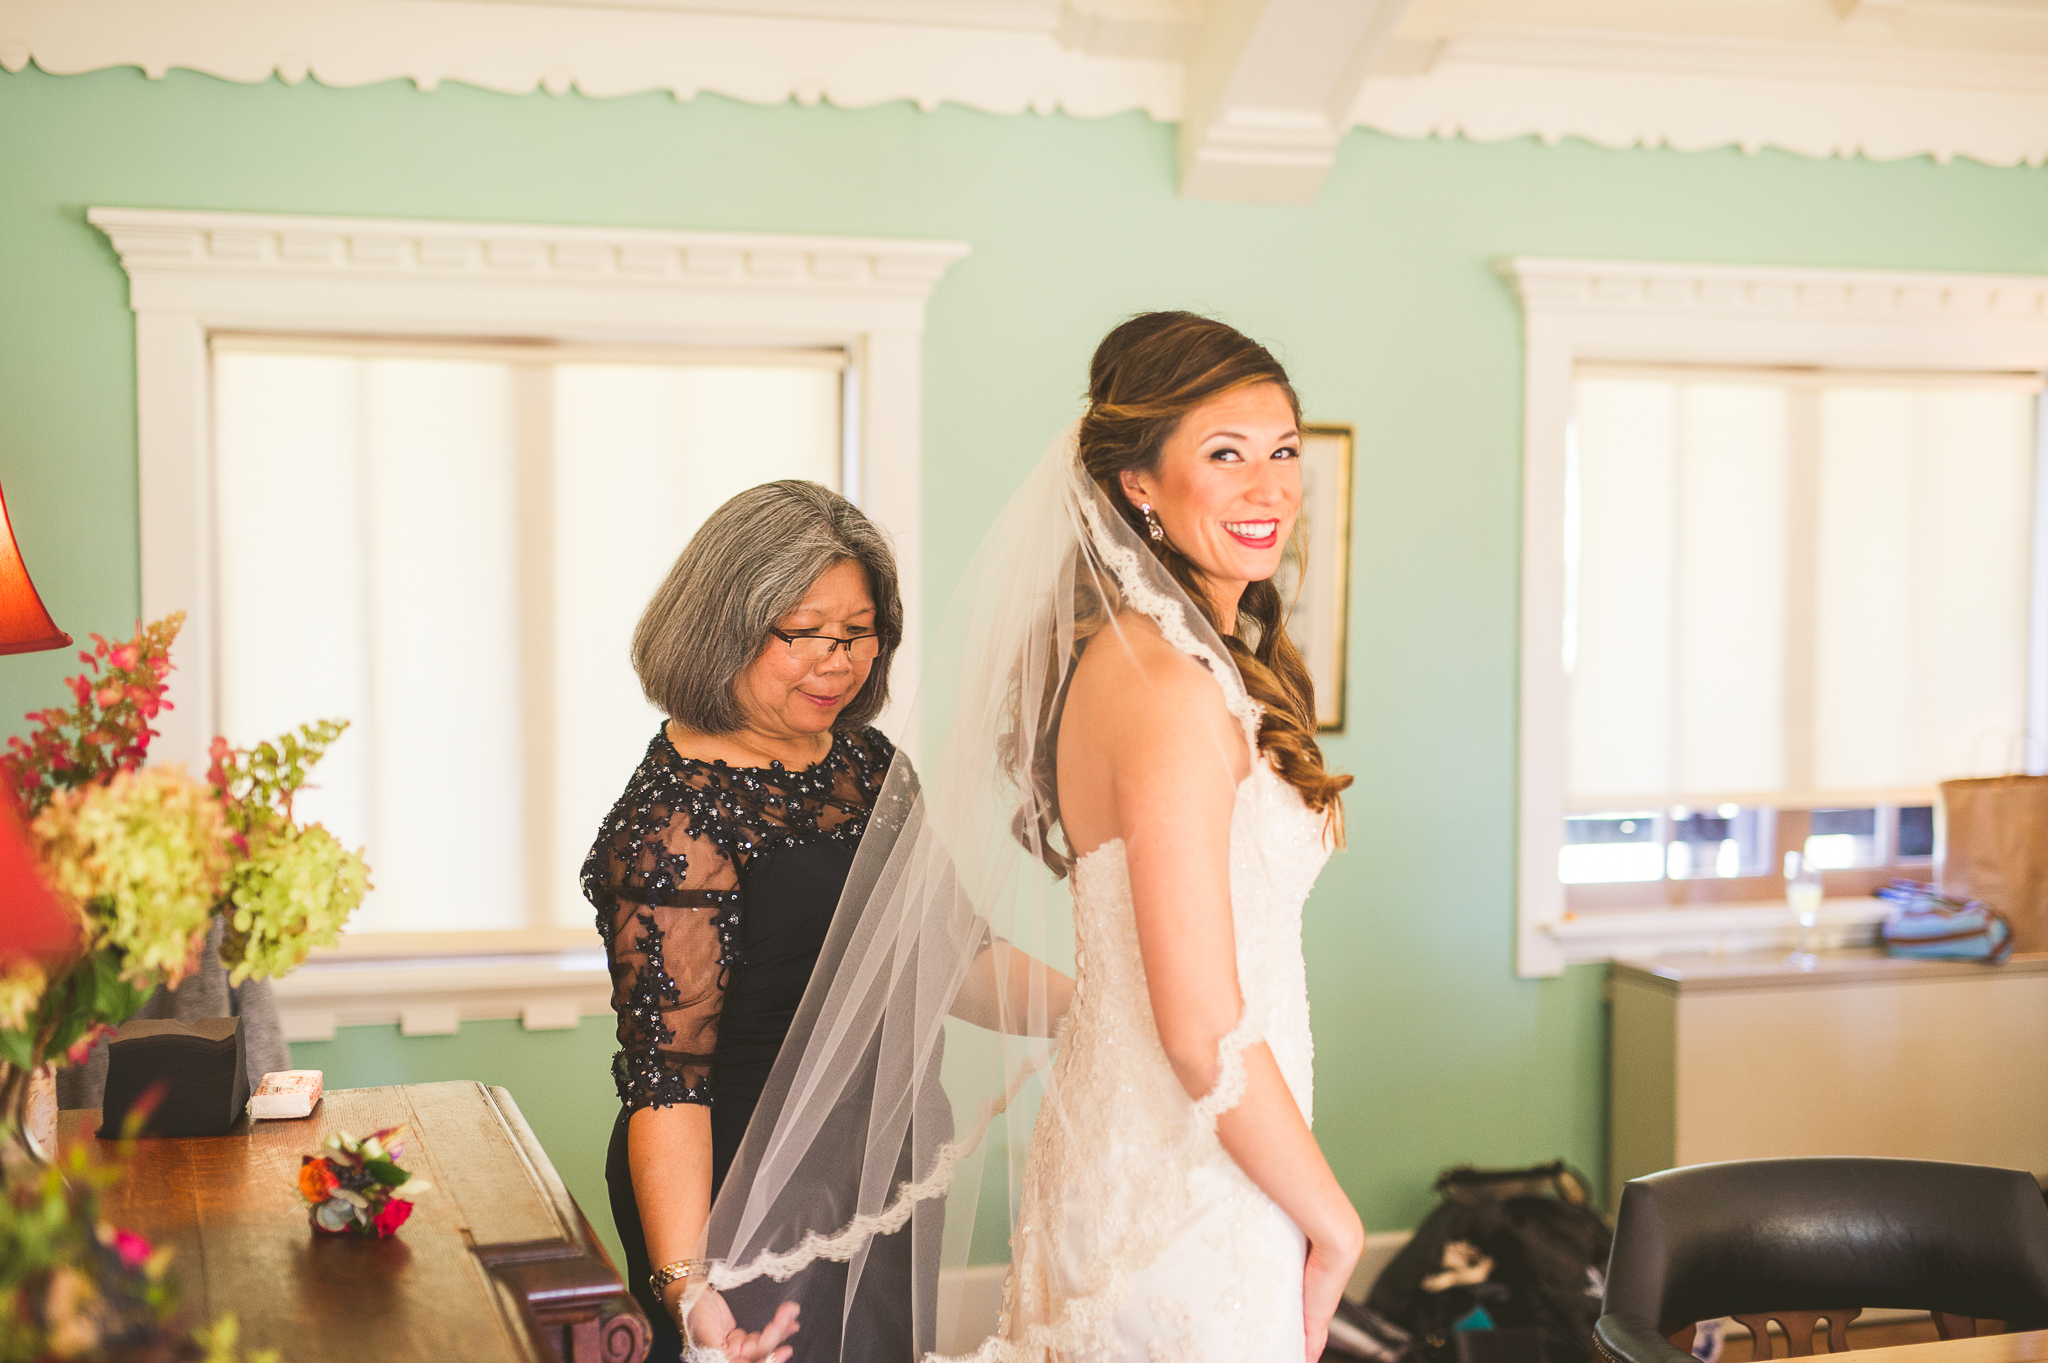 01 bride getting ready - Mandy + Mike // Amazing Wedding at Stout's Island Wisconsin Preview